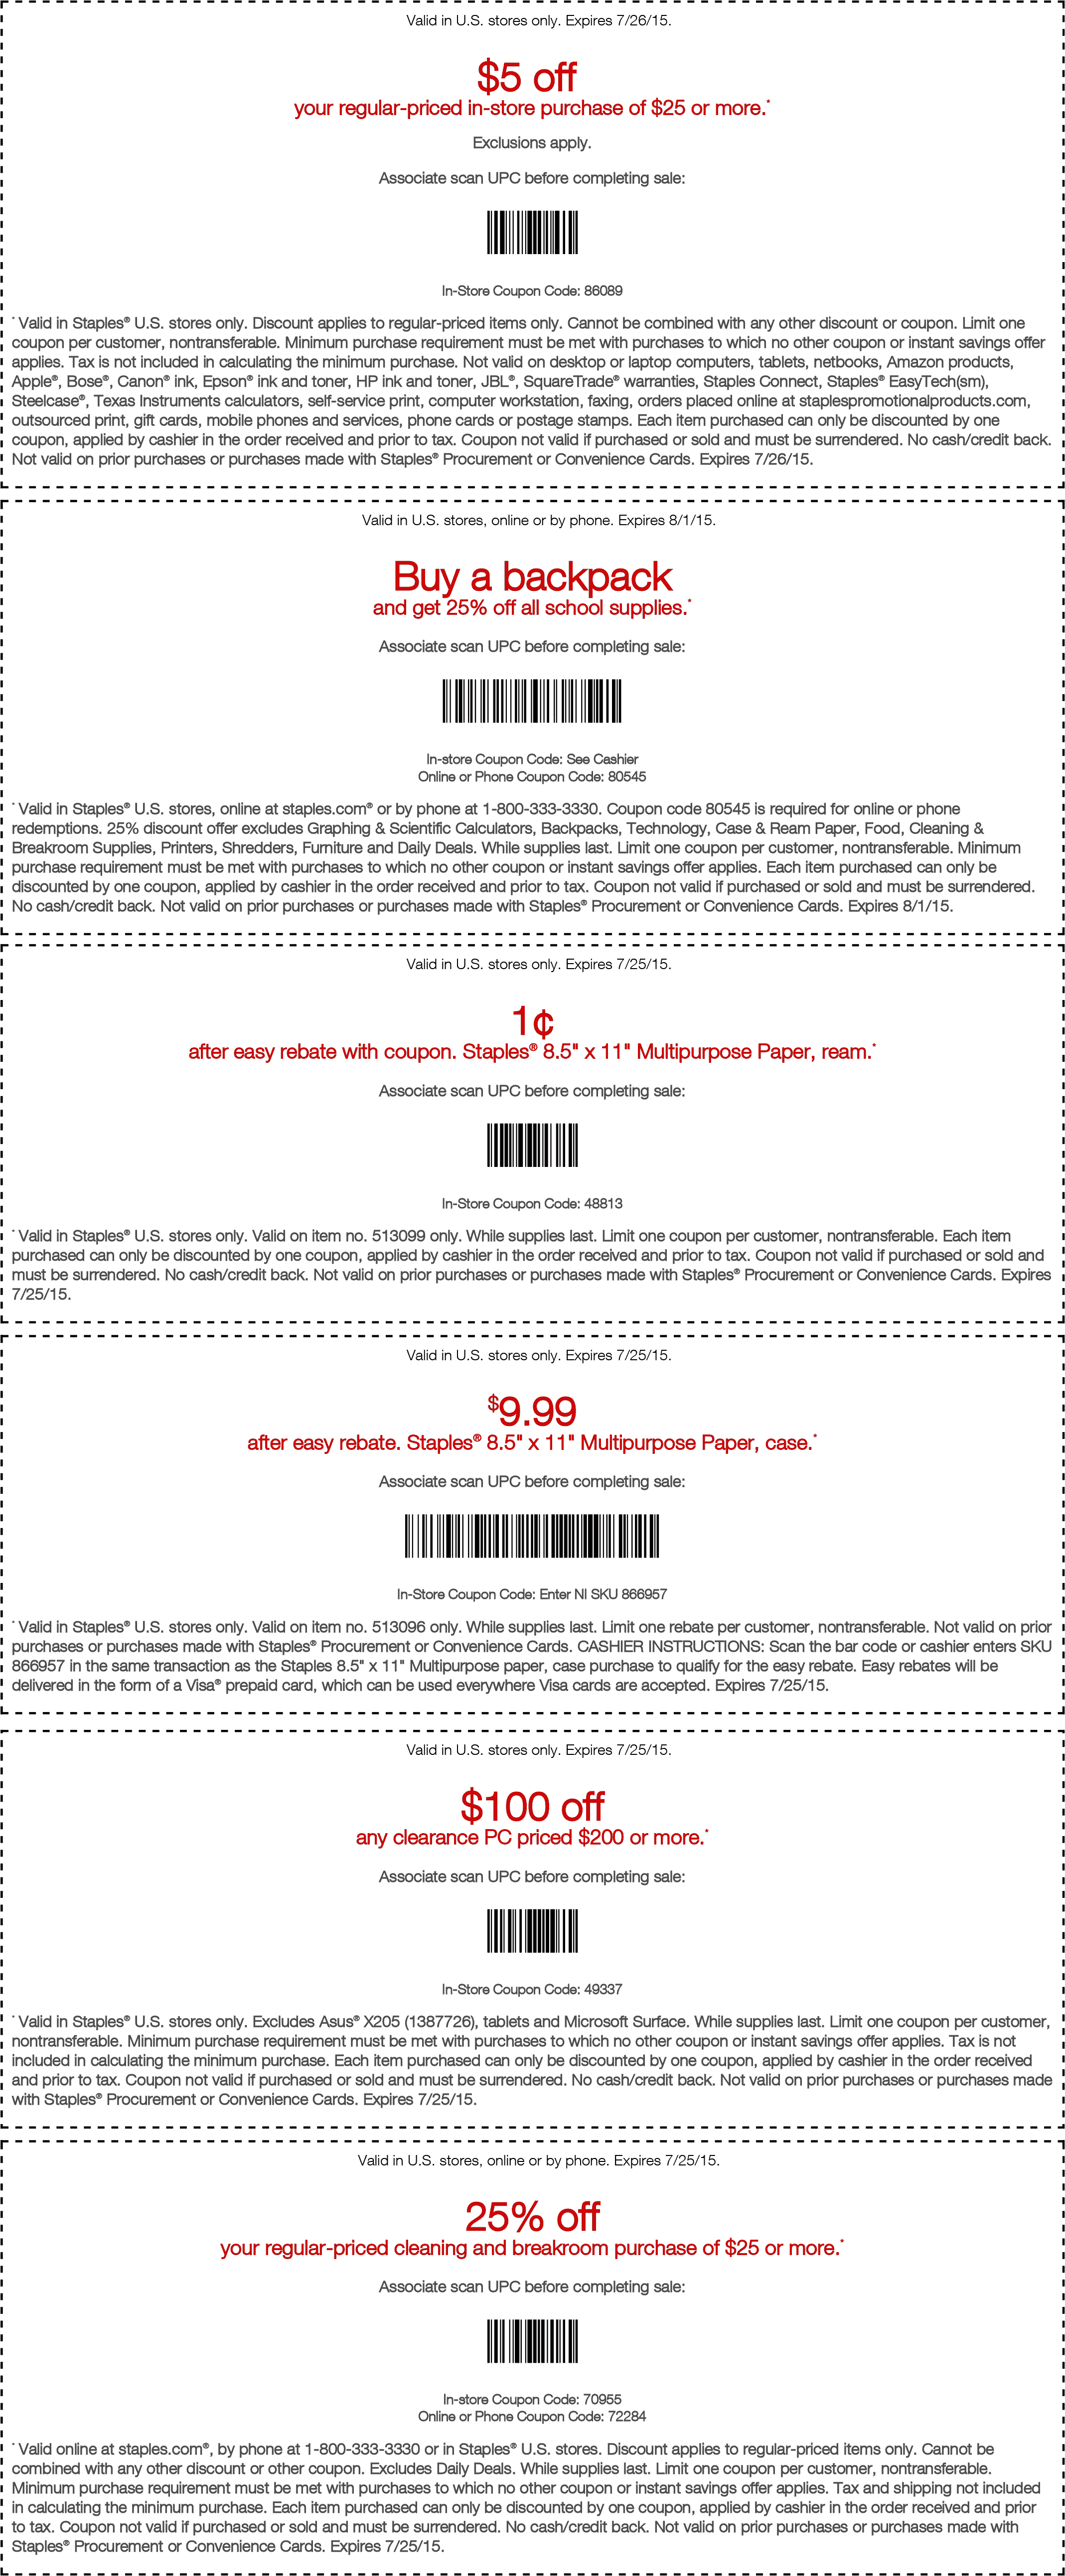 Staples Coupon December 2016 $5 off $25, free shredding & more at Staples